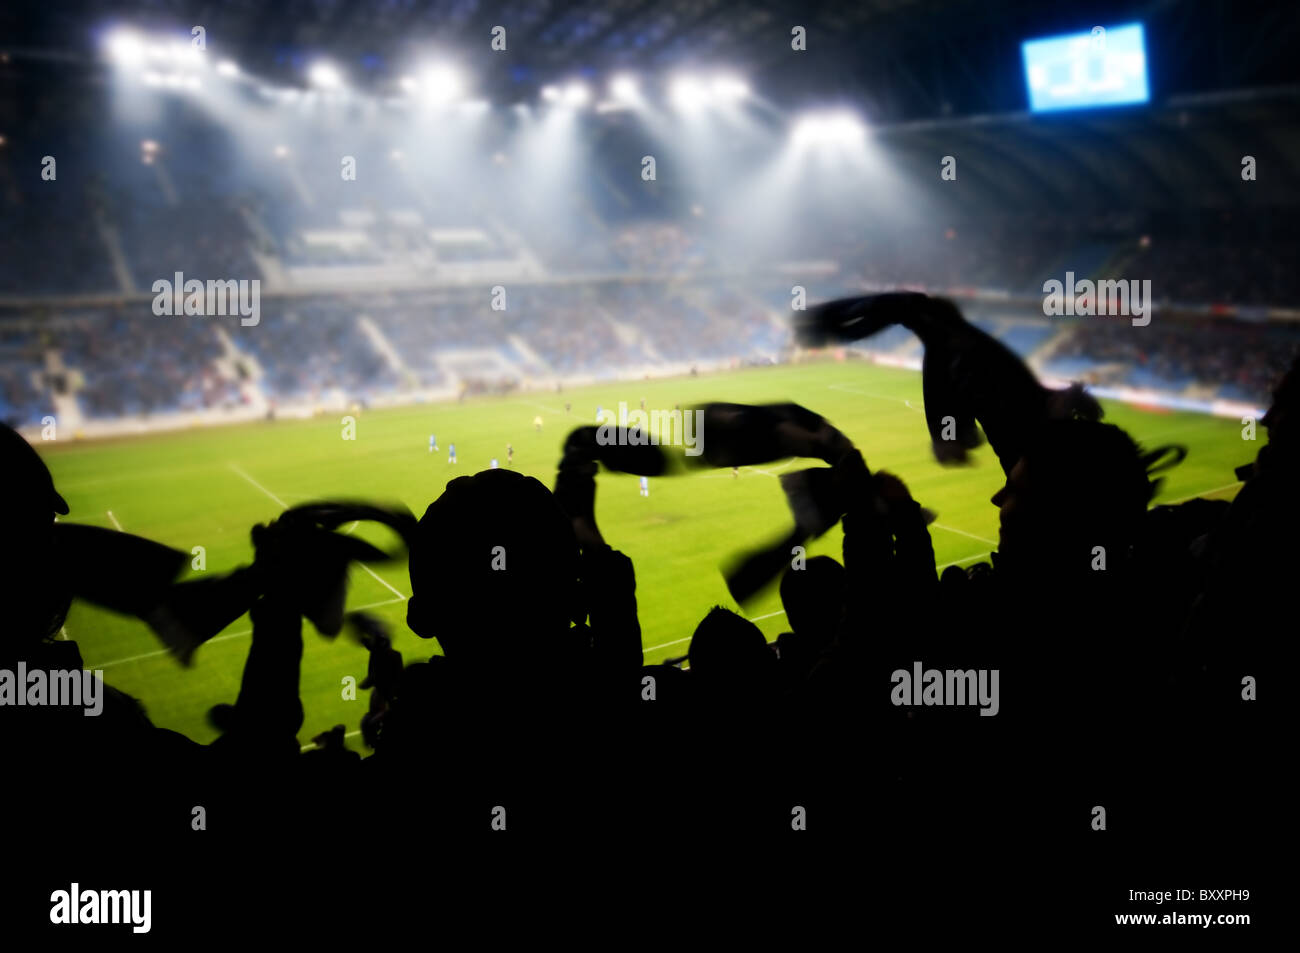 Silhouettes of fans celebrating a goal on football / soccer match - Stock Image